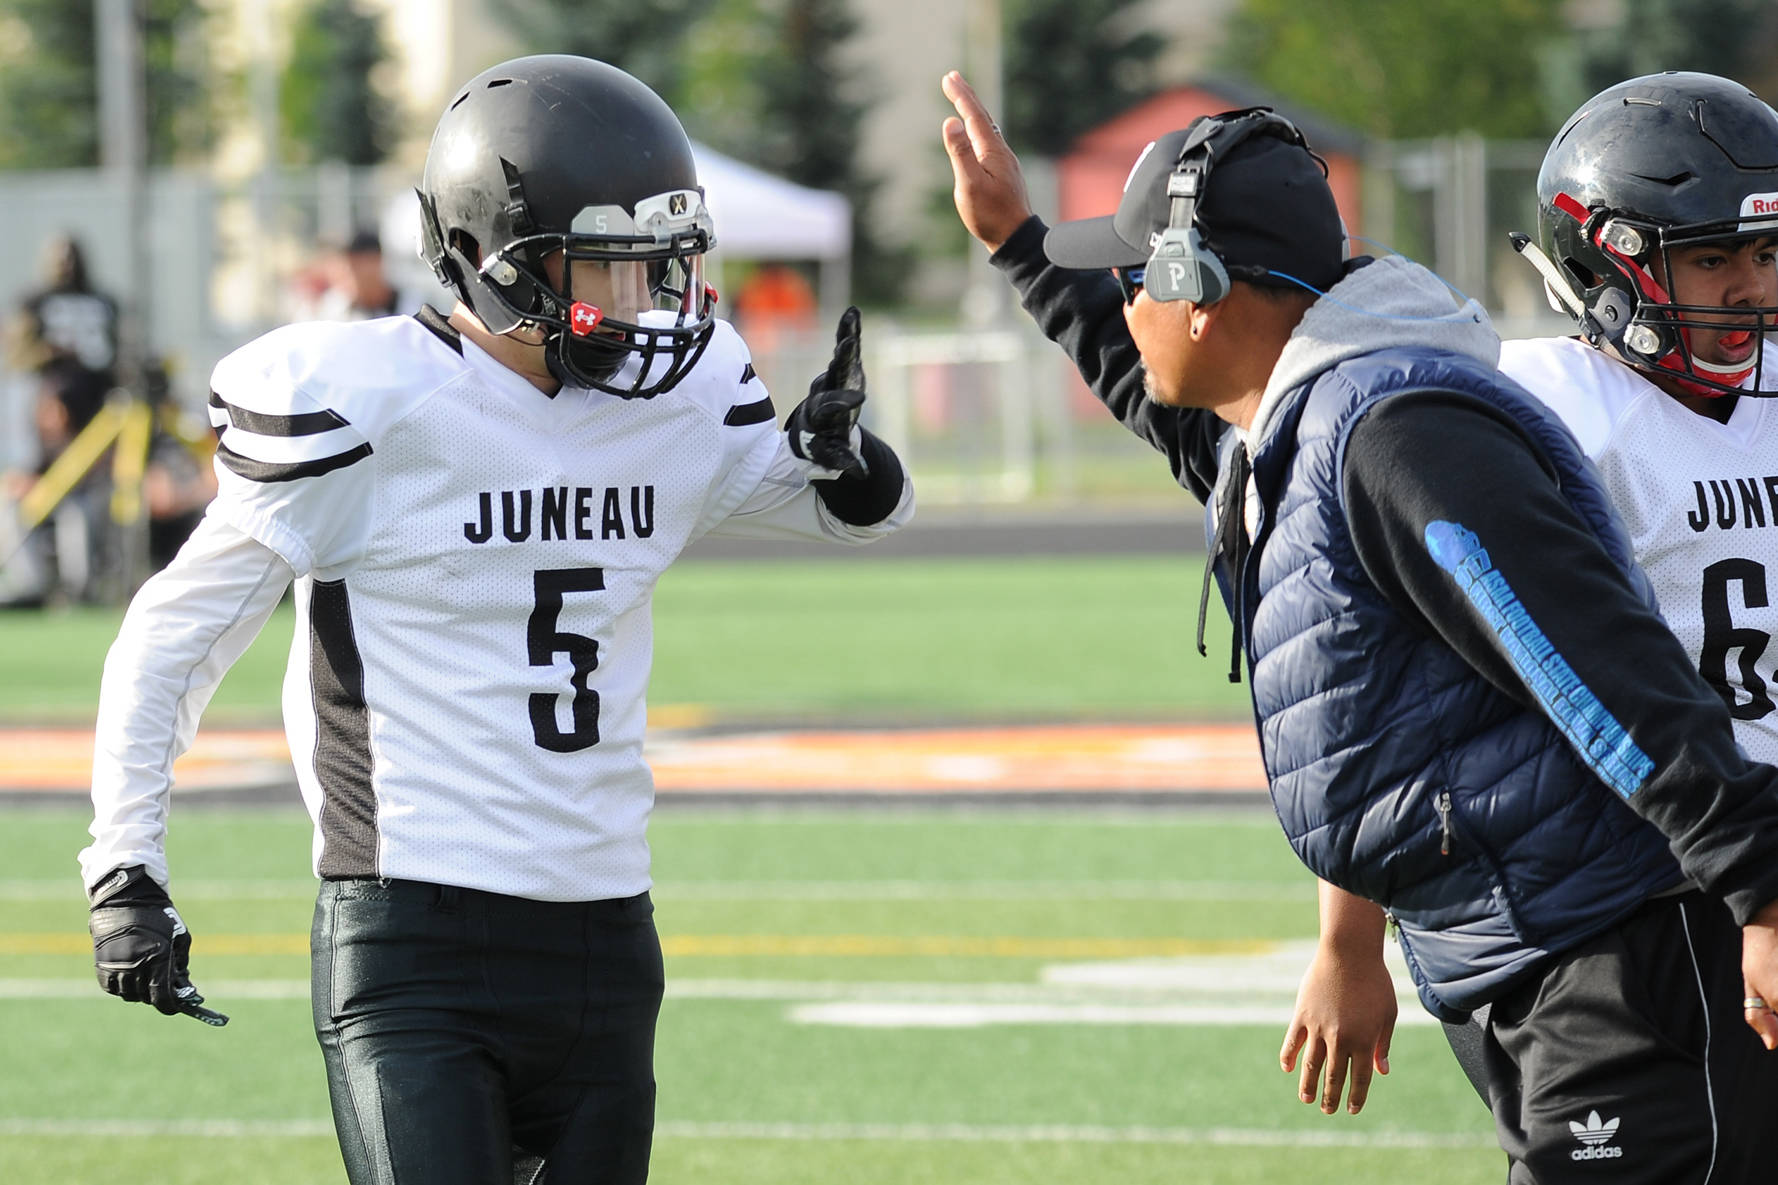 Hansel Hinckle is congratulated by coach Randy Quinto following his interception return for a touchdown last Saturday. (Michael Dineen | For the Juneau Empire)